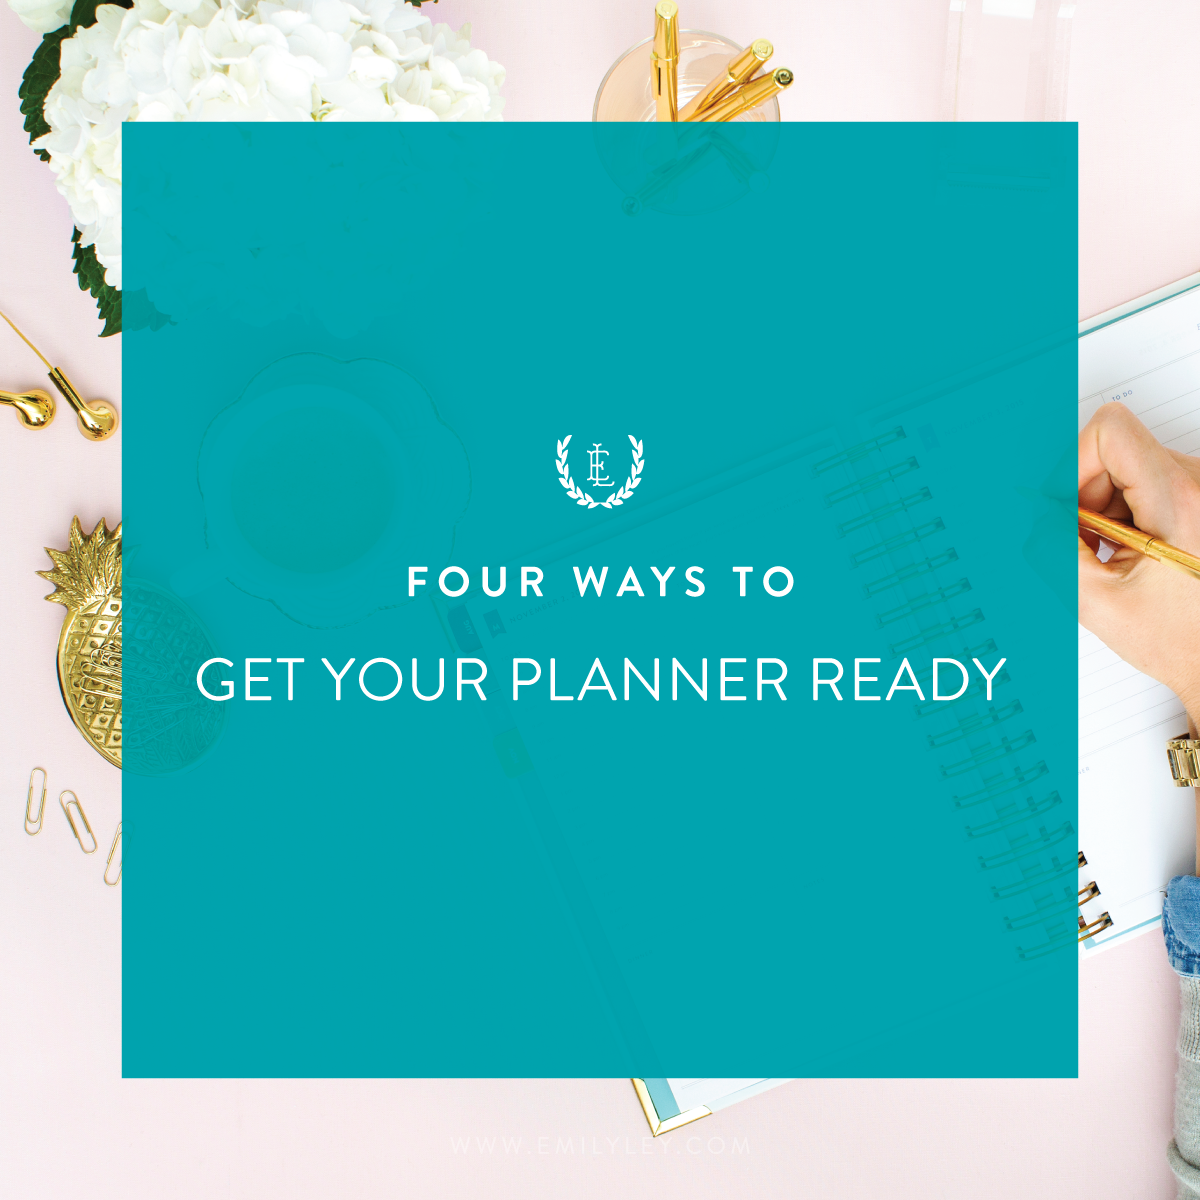 Planner-Ready